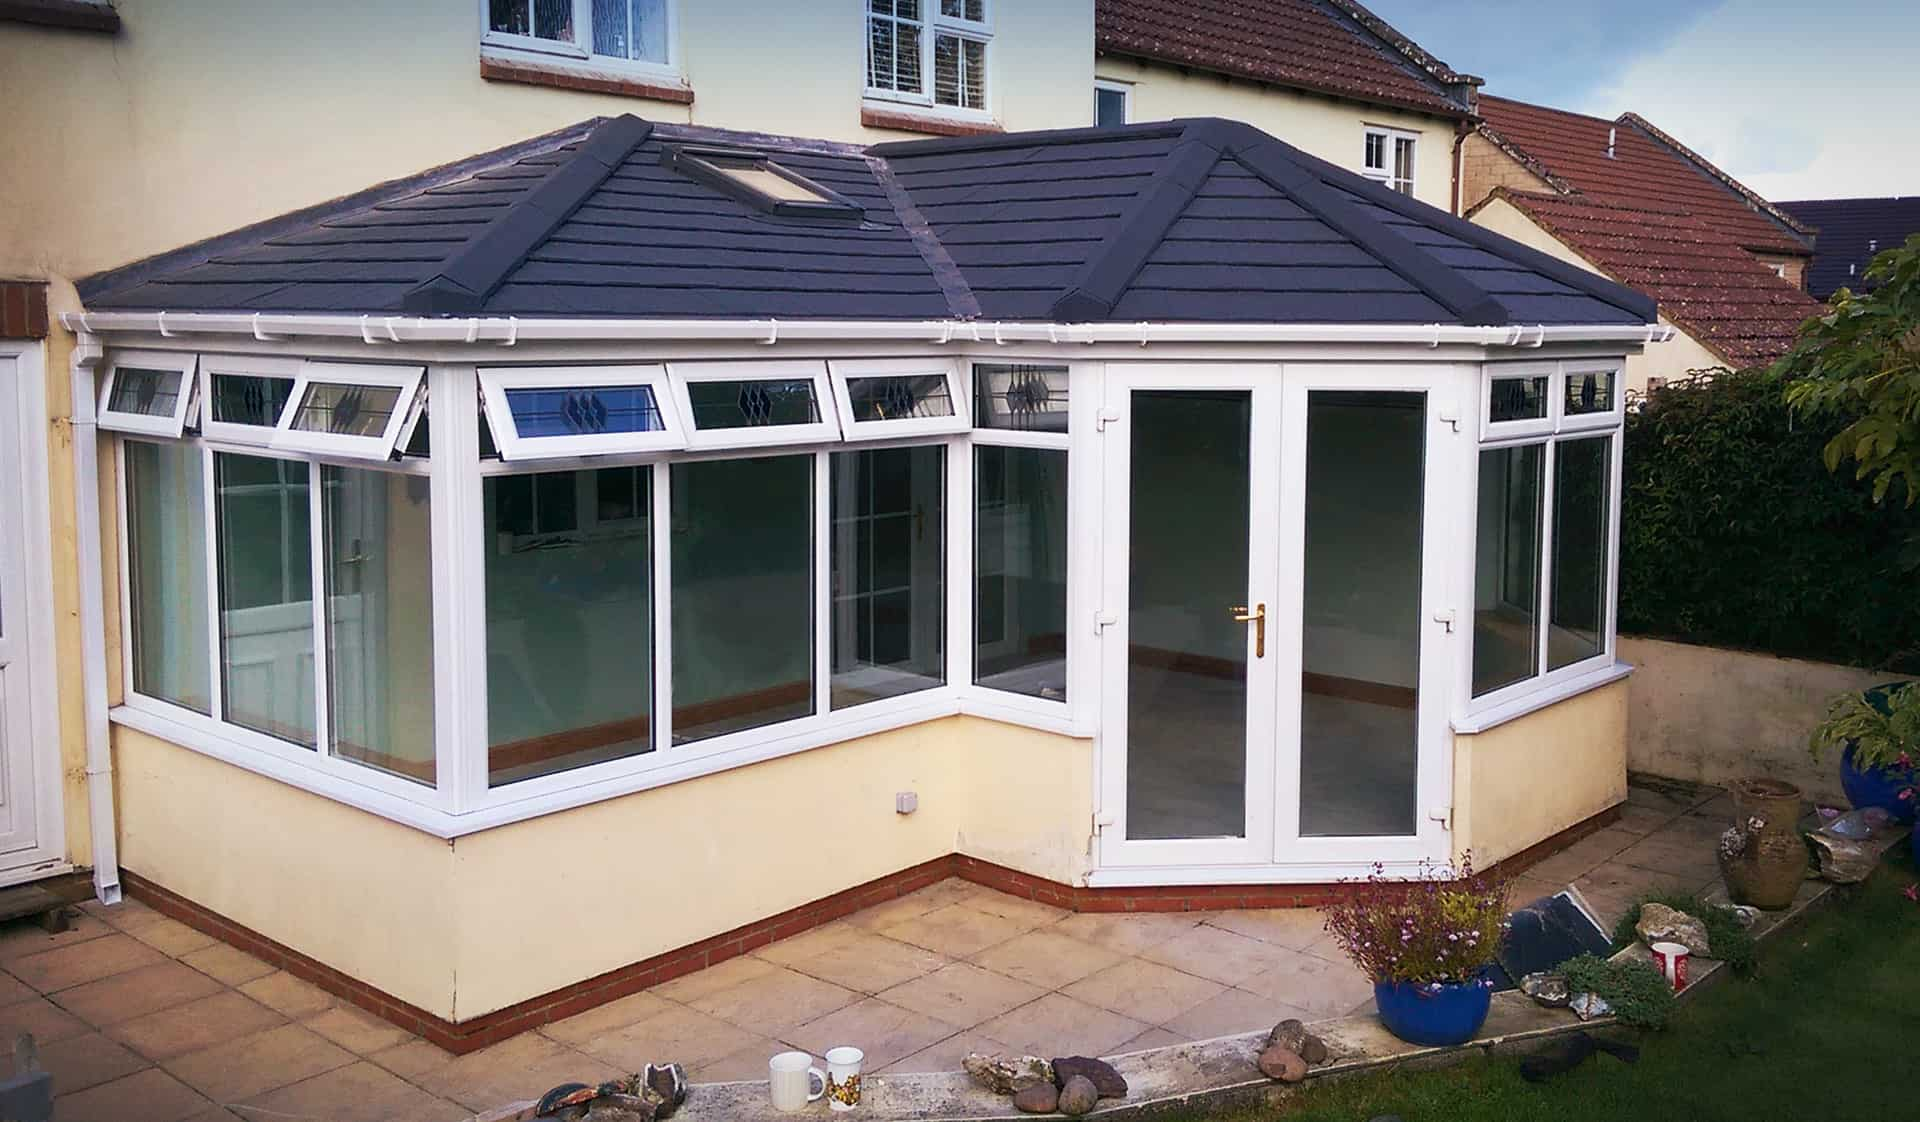 Conservatory roof after